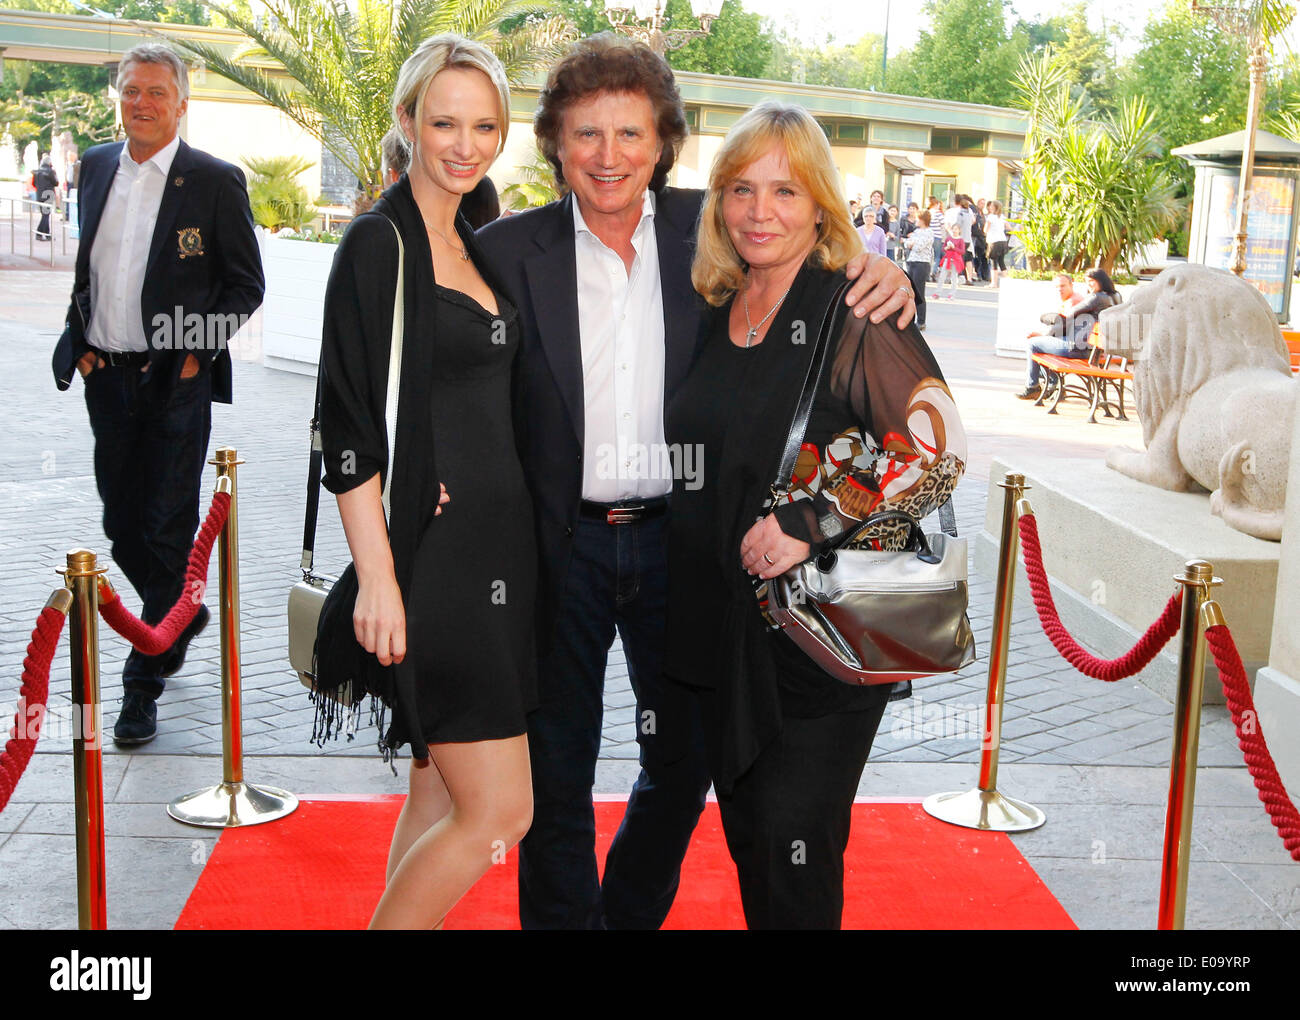 Herbolzheim, Germany - May 5, 2014: Eagles Charity Golf Cup and Gala at Golfclub Breisgau and Europa Park, Rust with Singer Olaf Malolepski and wife Sonja and Daughter Pia Credit:  dpa picture alliance/Alamy Live News - Stock Image